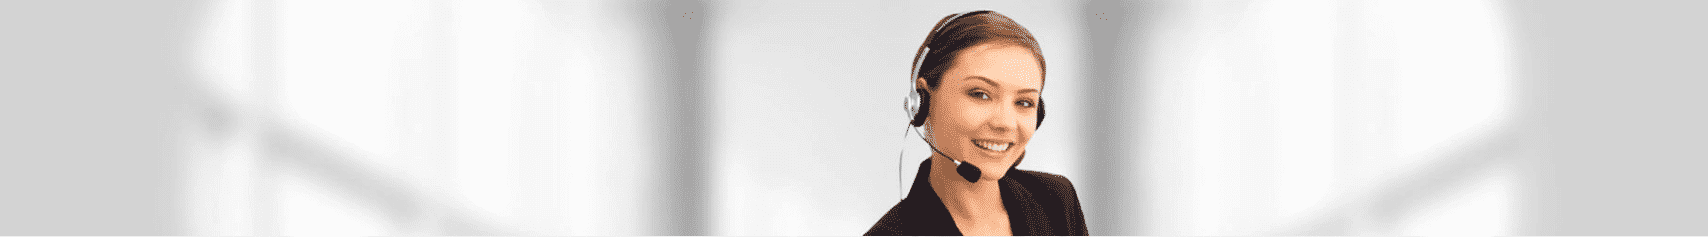 Texas Call Centers | Call Centers in Texas | Call Centers in Dallas | Call Centers in Texas | Call Centers in Austin